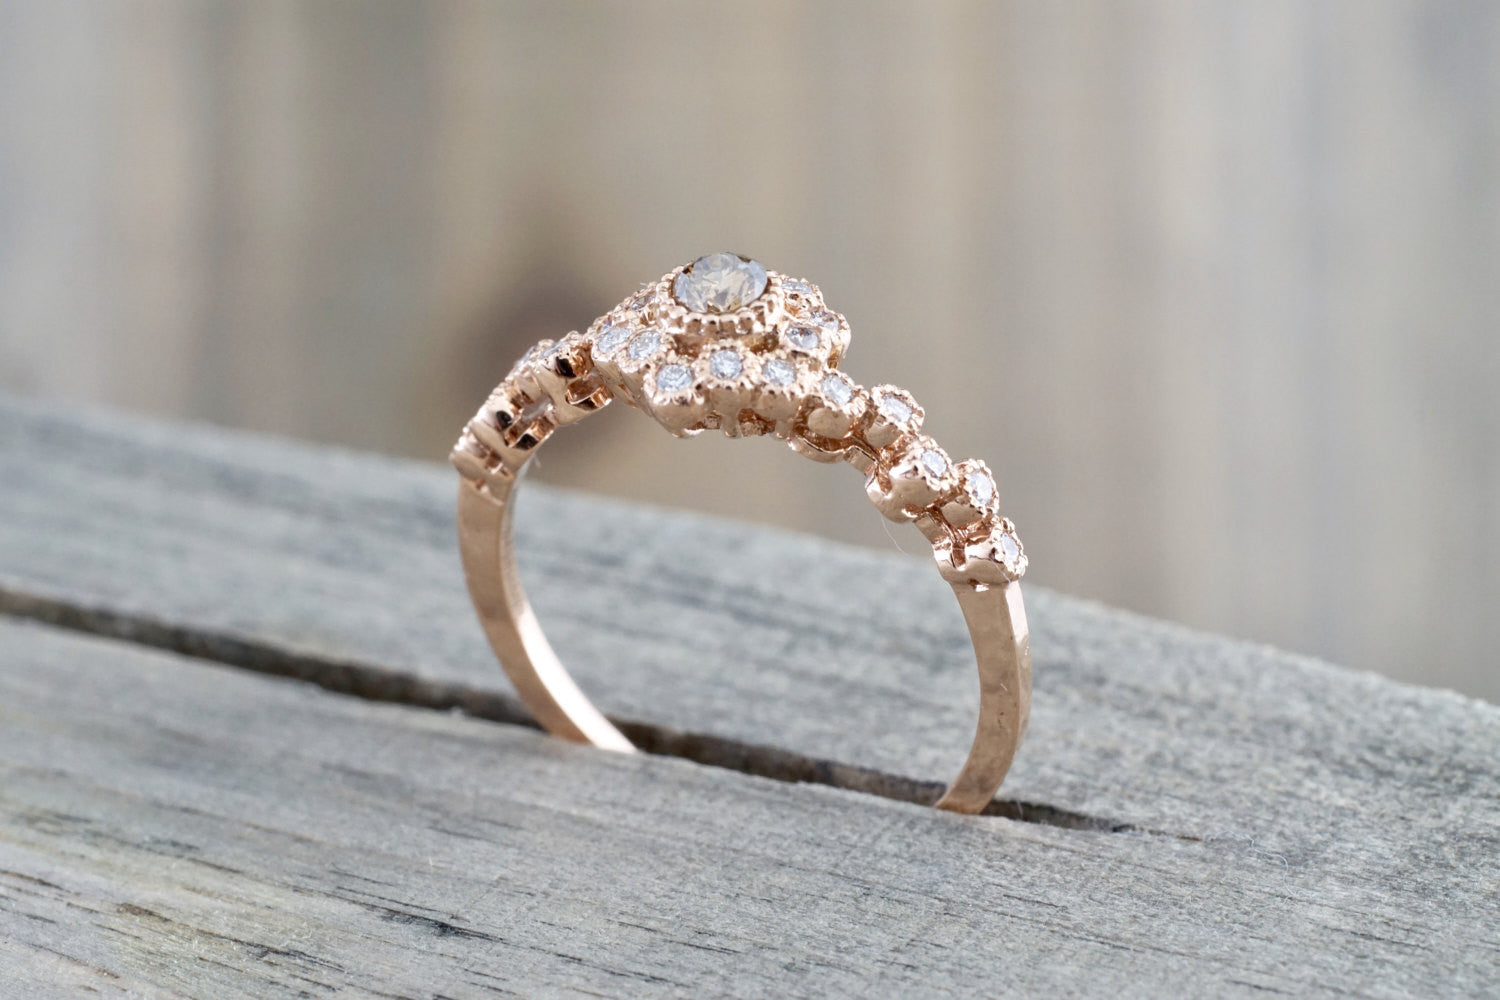 Vermont 14K Rose Gold Classic Chocalate Diamond Engagement Wedding Promise Vintage Classic Cute Ring Band Arch Shaped